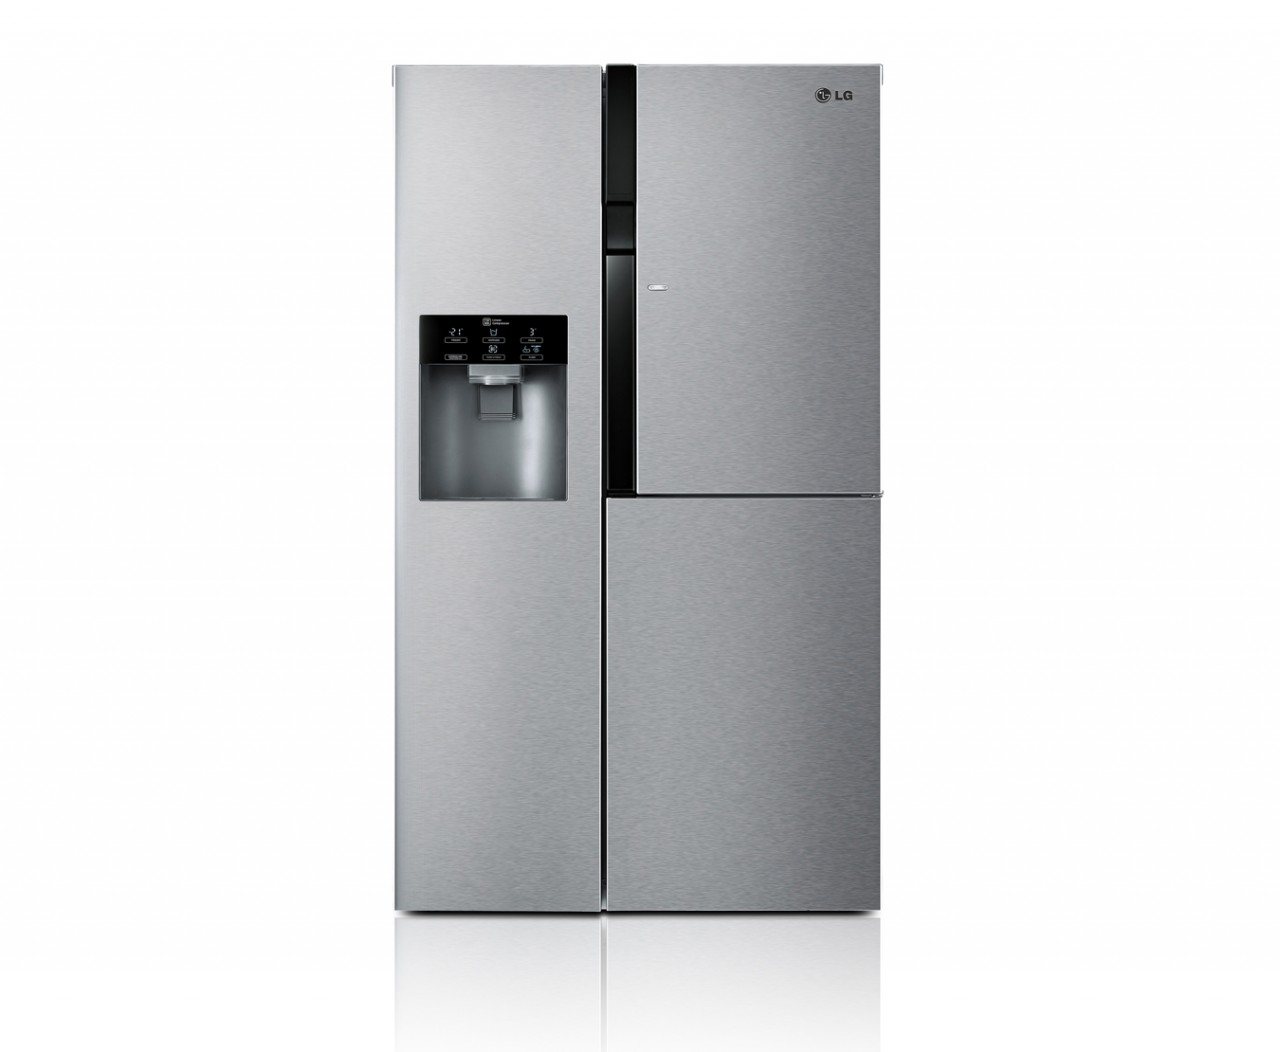 lg grj257jsxn side by side refrigerator in pakistan. Black Bedroom Furniture Sets. Home Design Ideas